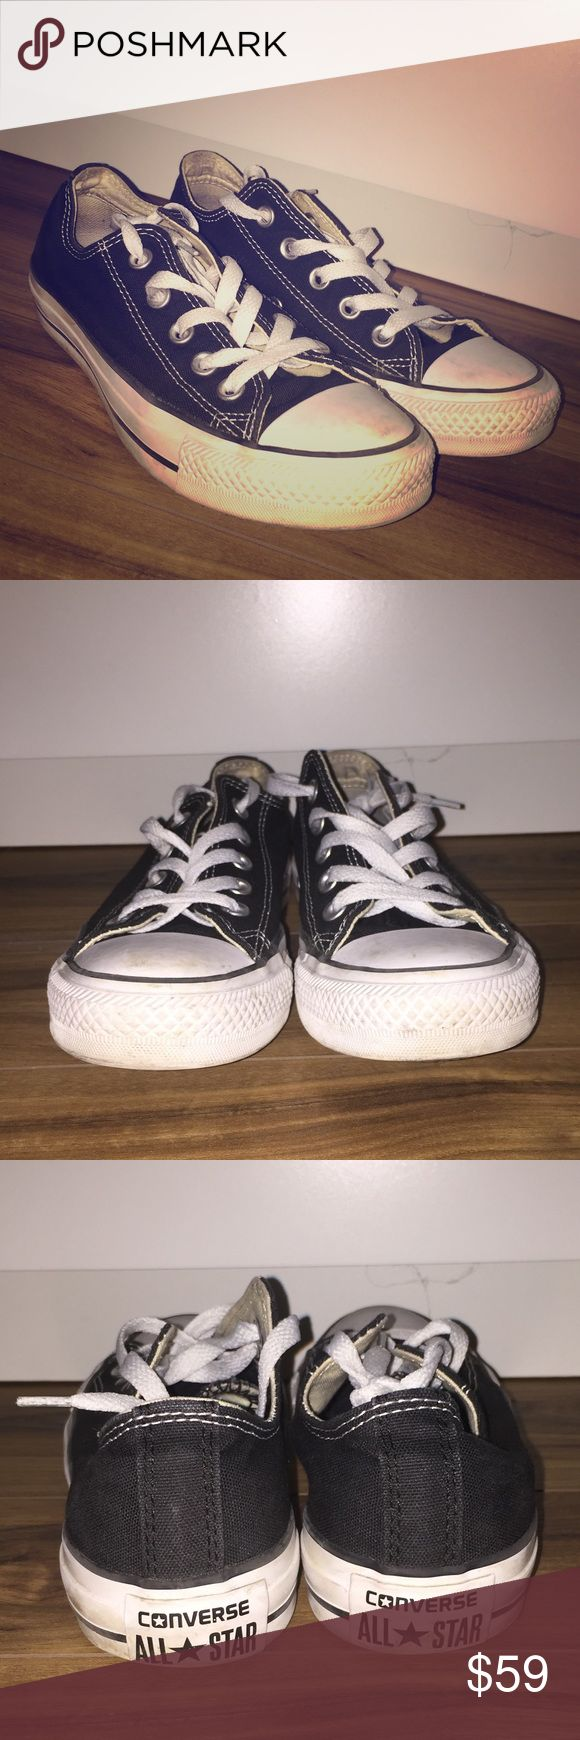 CONVERSE WOMEN'S CHUCK TAYLOR ALL STAR SNEAKERS •In a great condition•  Plimsolls by Converse •Lightweight, textile upper •Classic low-top design •Lace up fastening •Vent eyelets to the inner foot •Signature branding to the tongue and heel •Geometric tread •Wipe with a damp sponge •Lining: 100% Textile, Sole: 100% Other Materials, Upper Part: 100% Textile Converse Shoes Sneakers